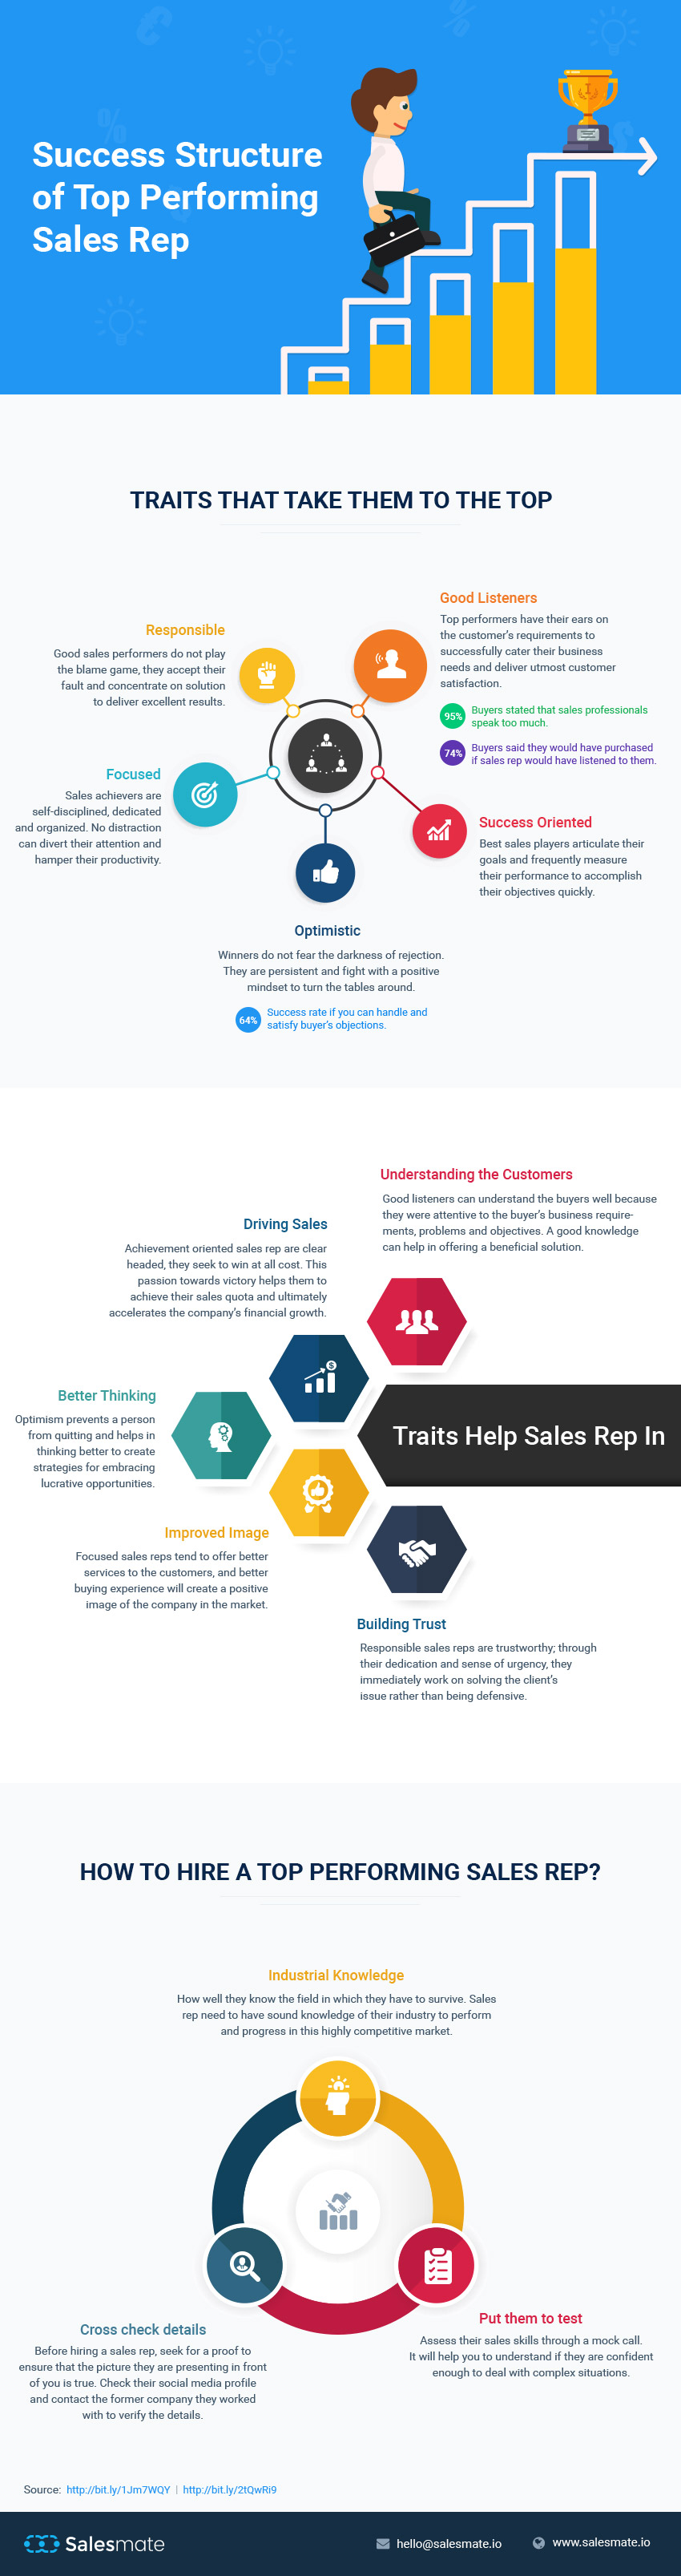 Infographic Success Structure of Top Performing Sales Rep